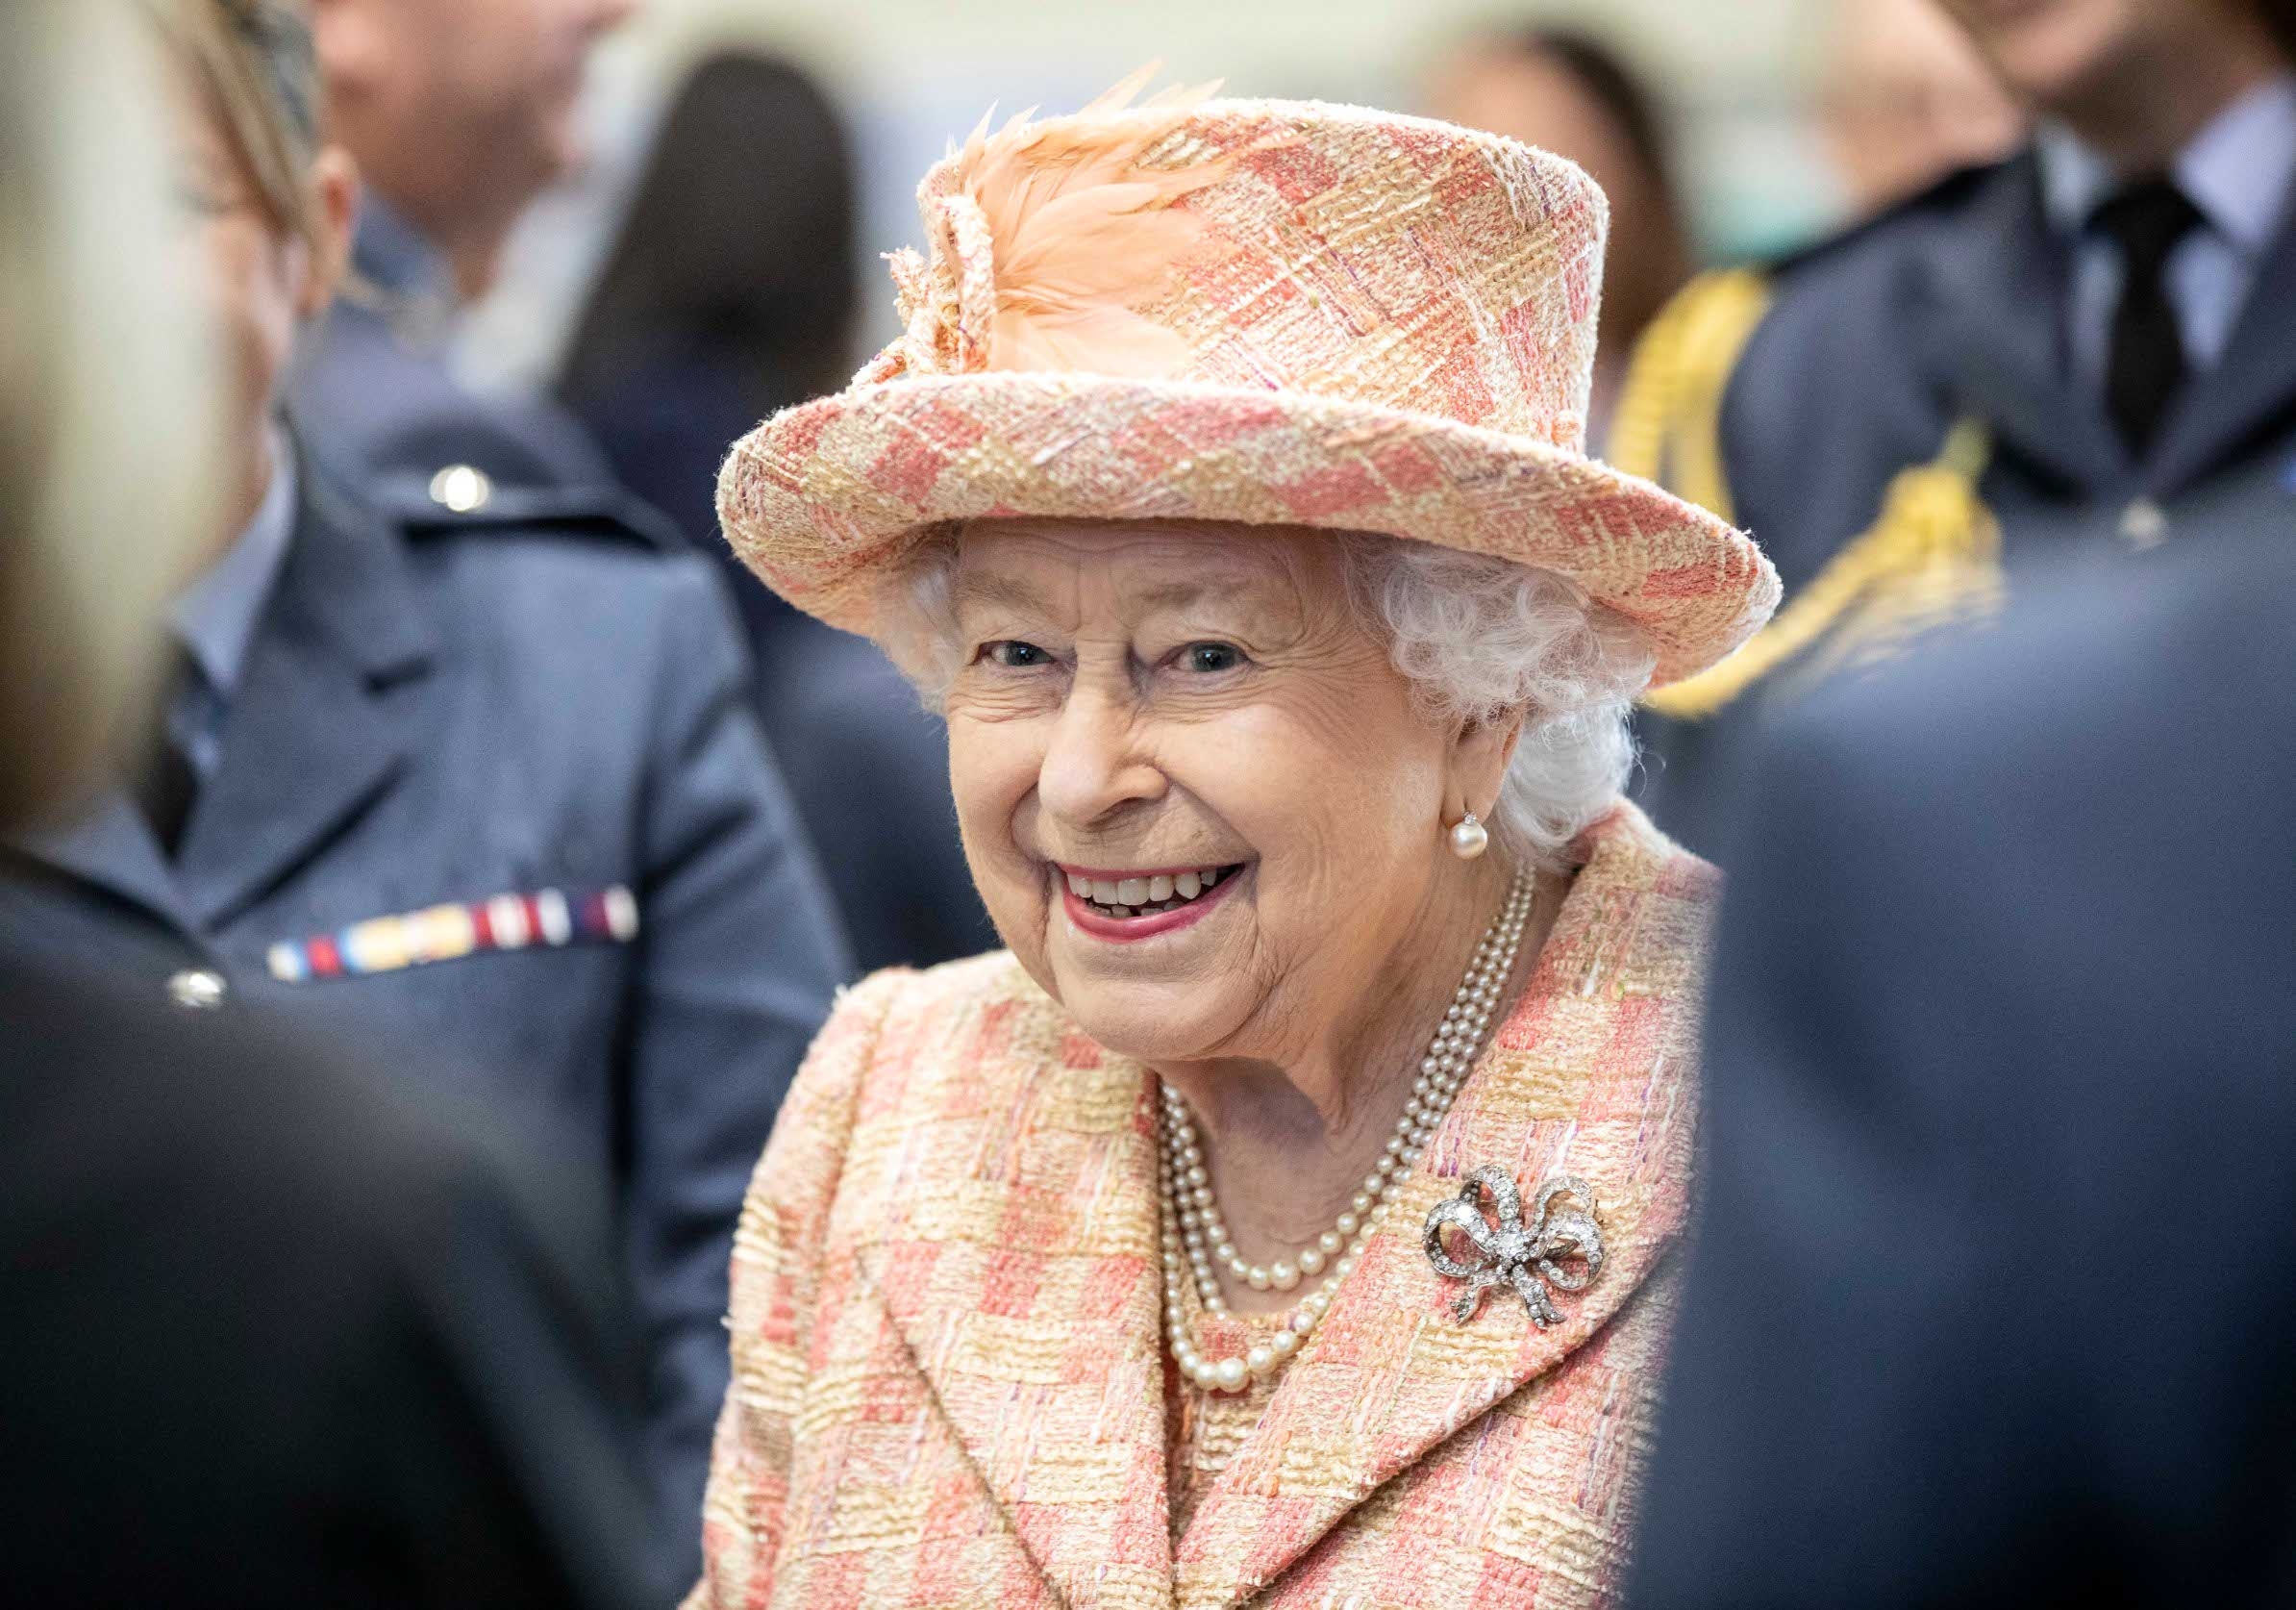 KING'S LYNN, ENGLAND - FEBRUARY 03: Queen Elizabeth II meets personnel at RAF Marham where she inspected the new integrated training centre that trains personnel on the maintenance of the new RAF F-35B Lightning II strike aircraft at Royal Air Force Marham on February 3, 2020 in King's Lynn, England. (Photo by Richard Pohle - WPA Pool/Getty Images)